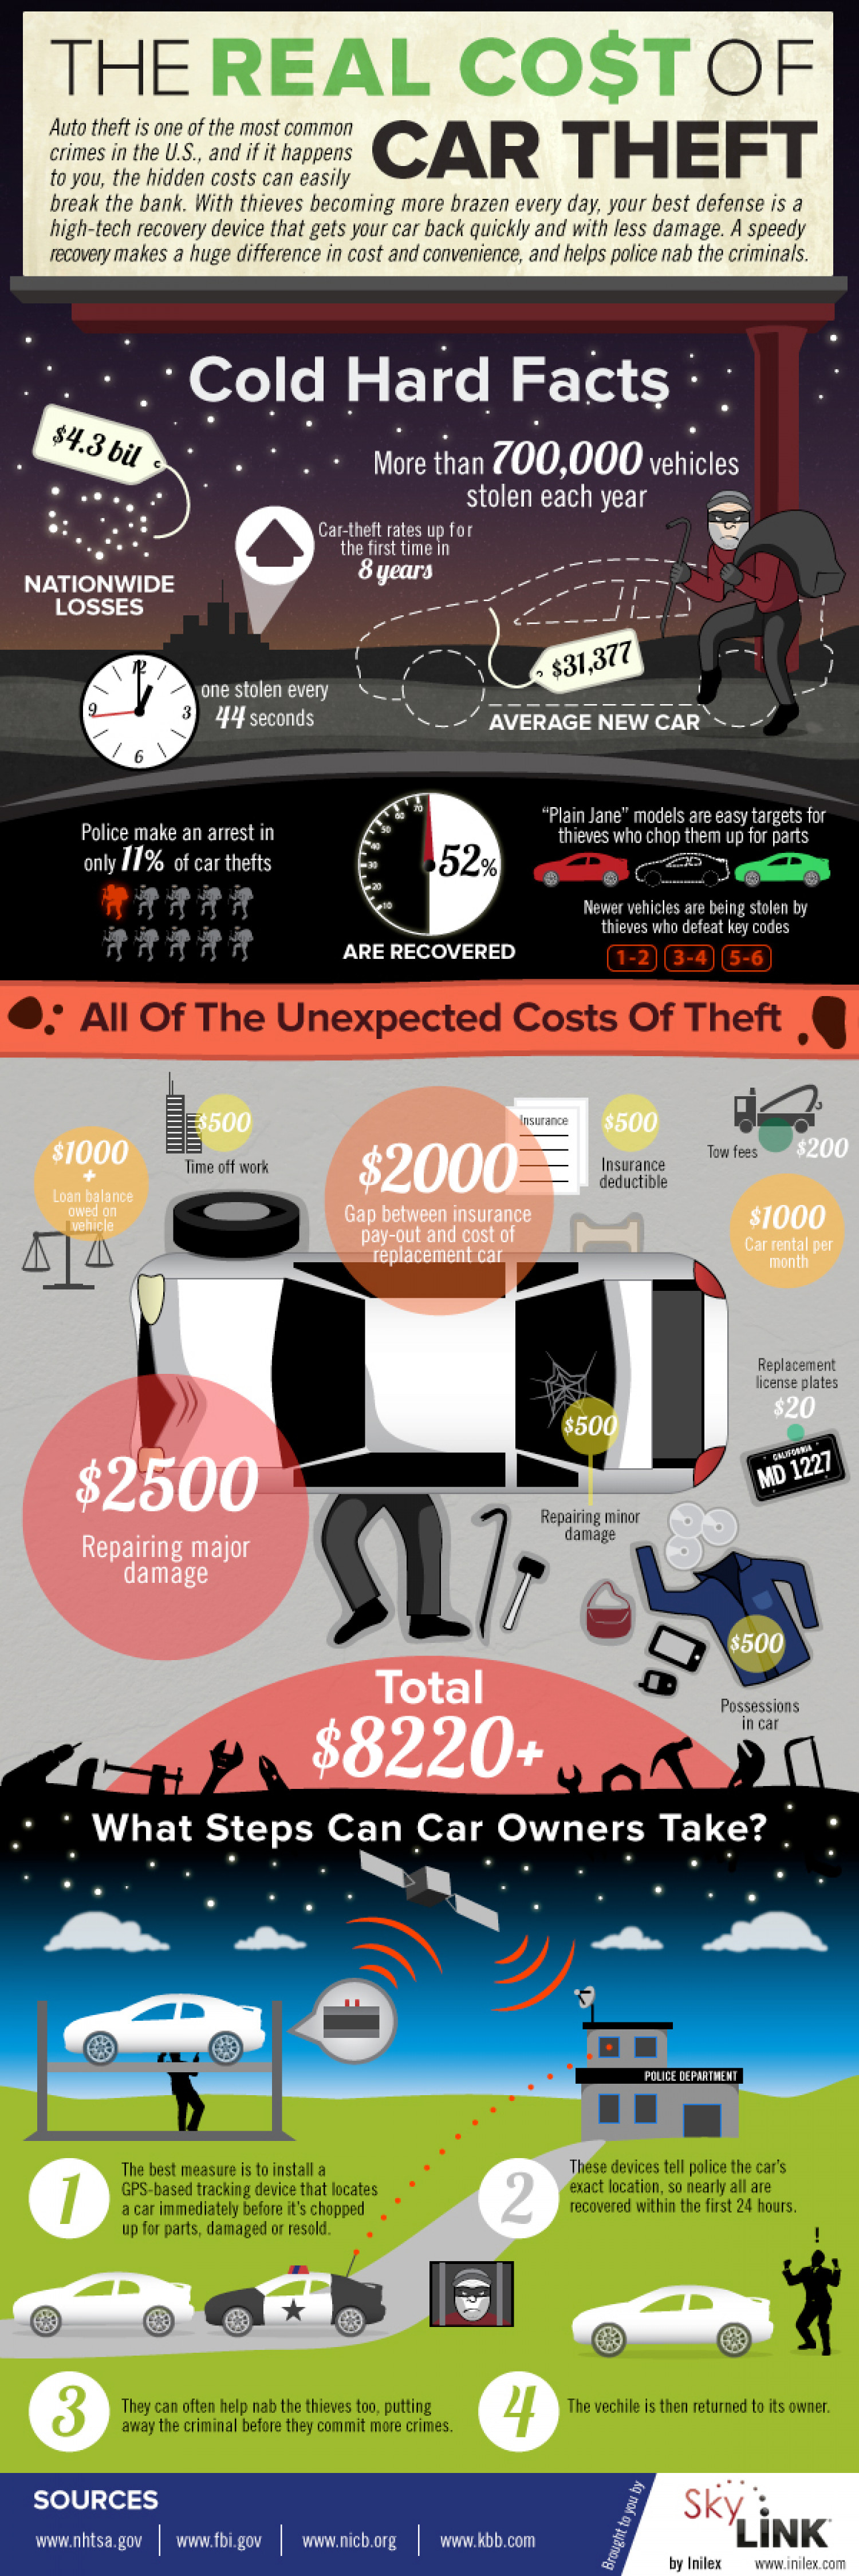 The Real Cost of Auto Theft Infographic